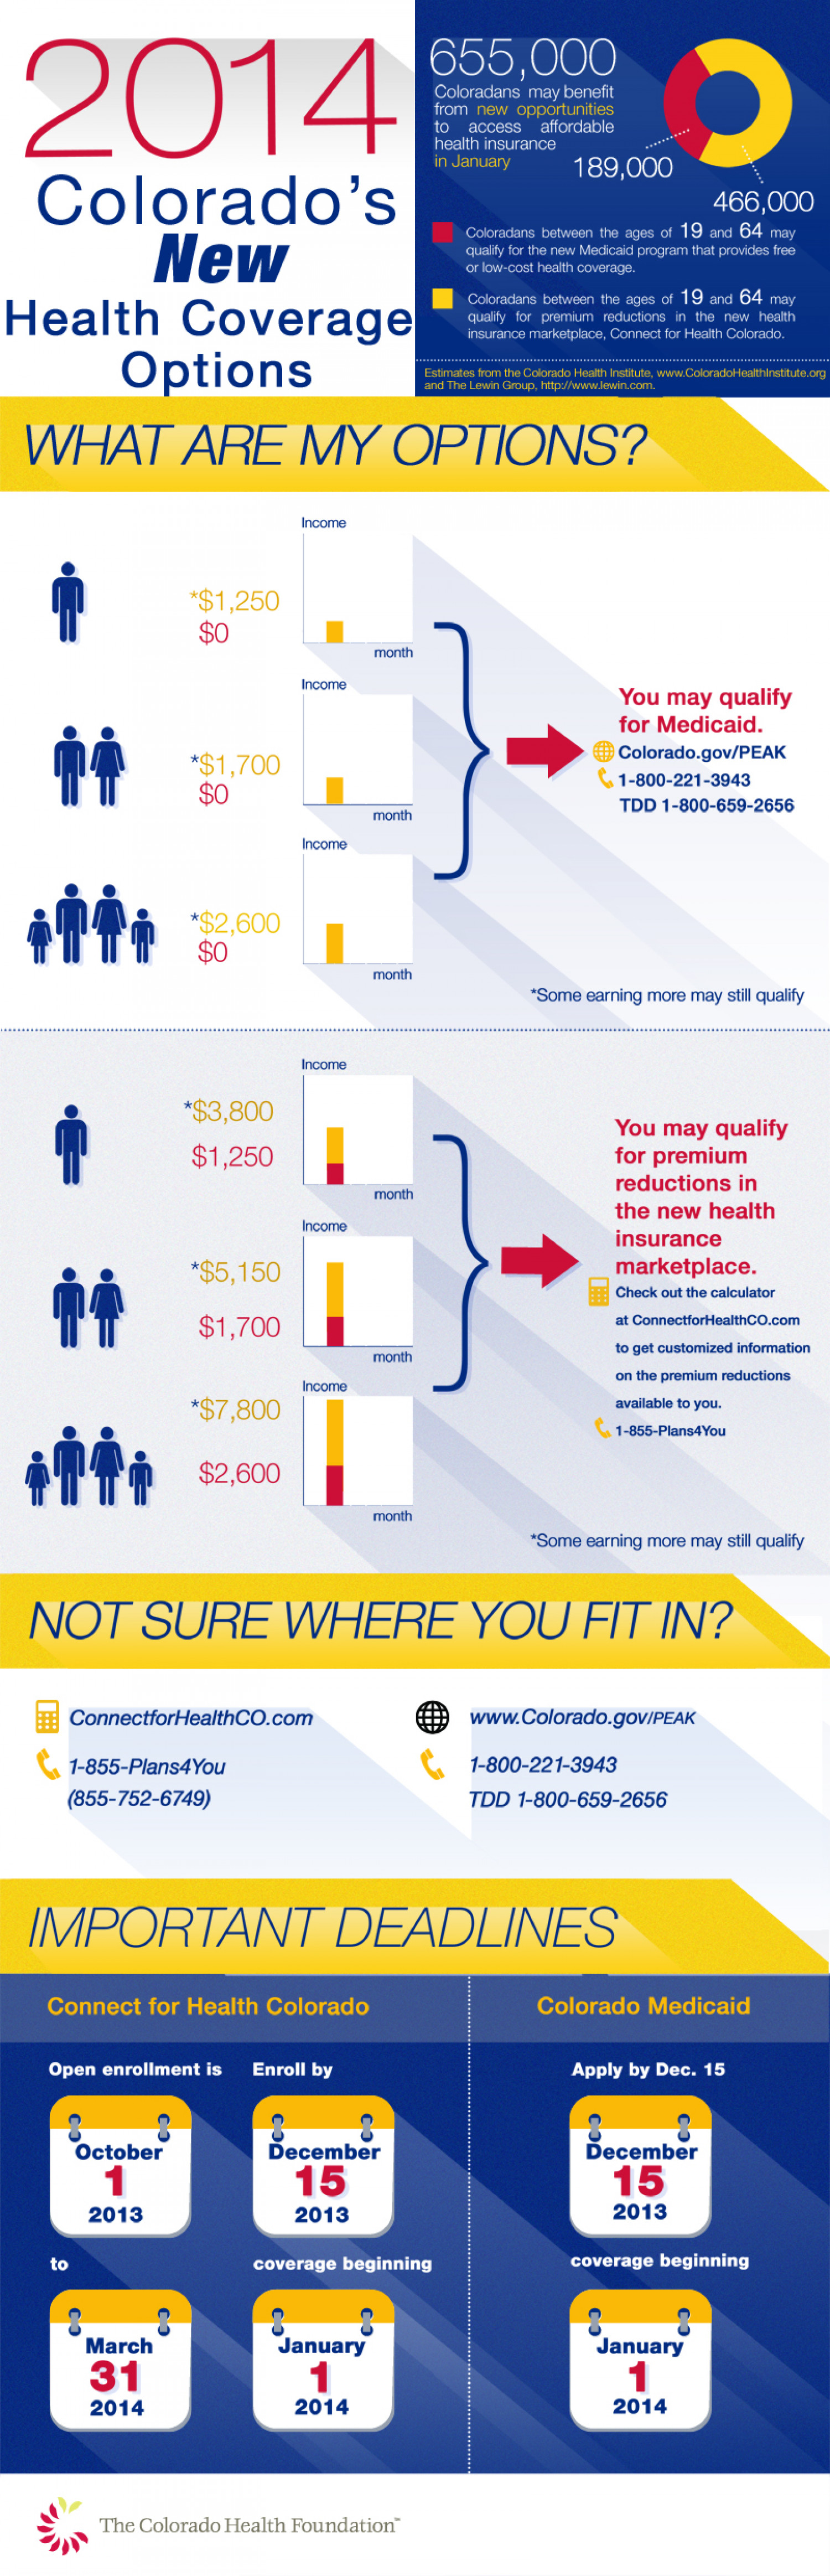 2014: Colorado's New Health Coverage Options Infographic